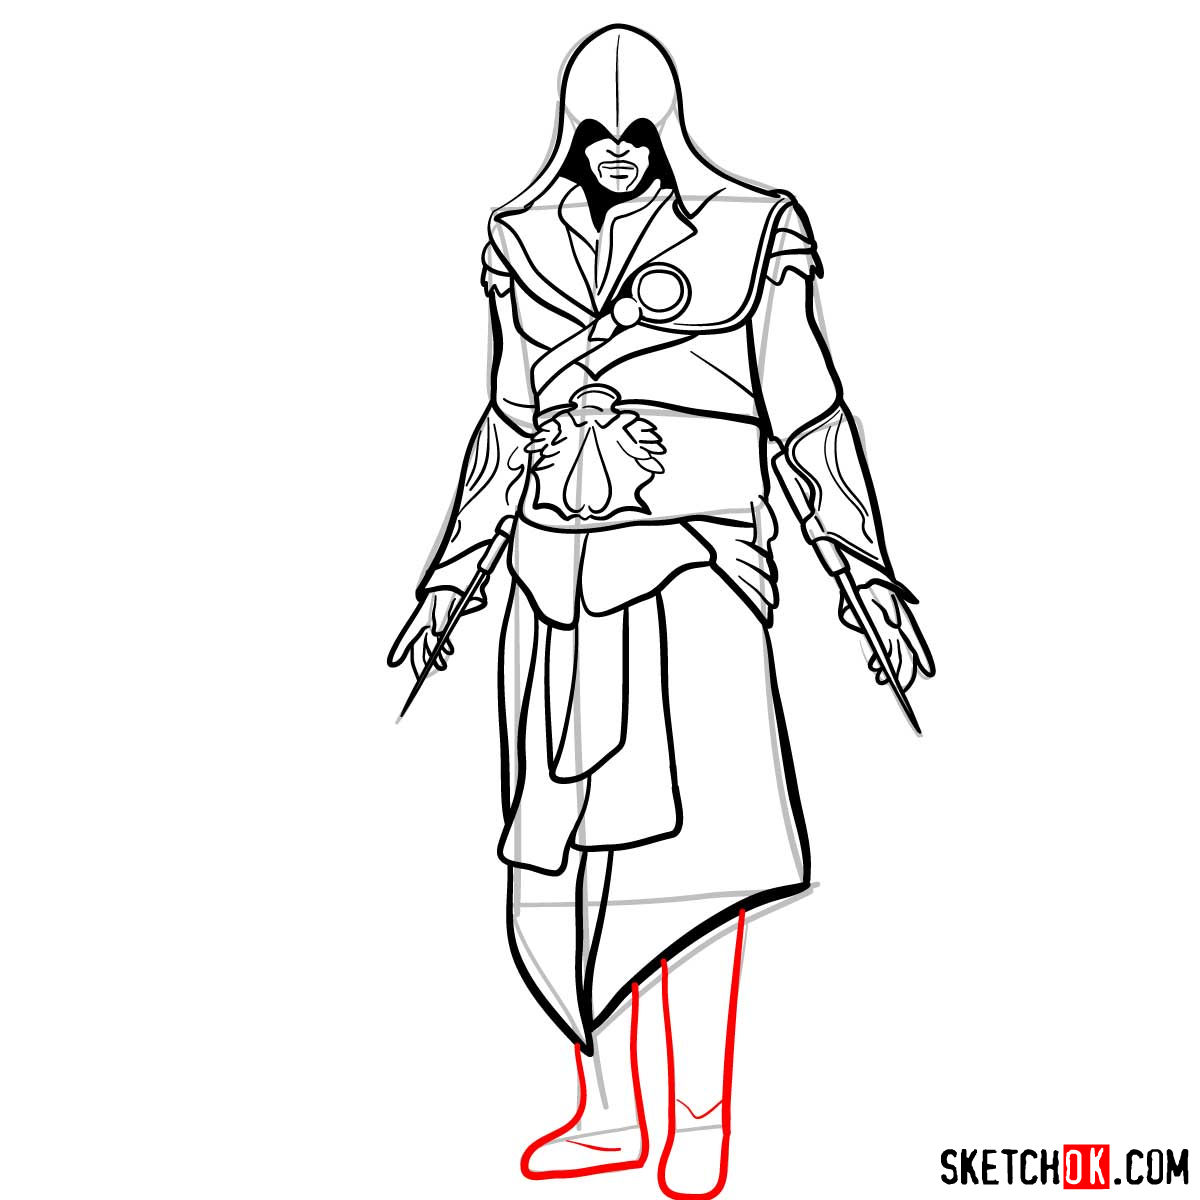 How to draw an Assassin from Assassin's Creed game - step 16